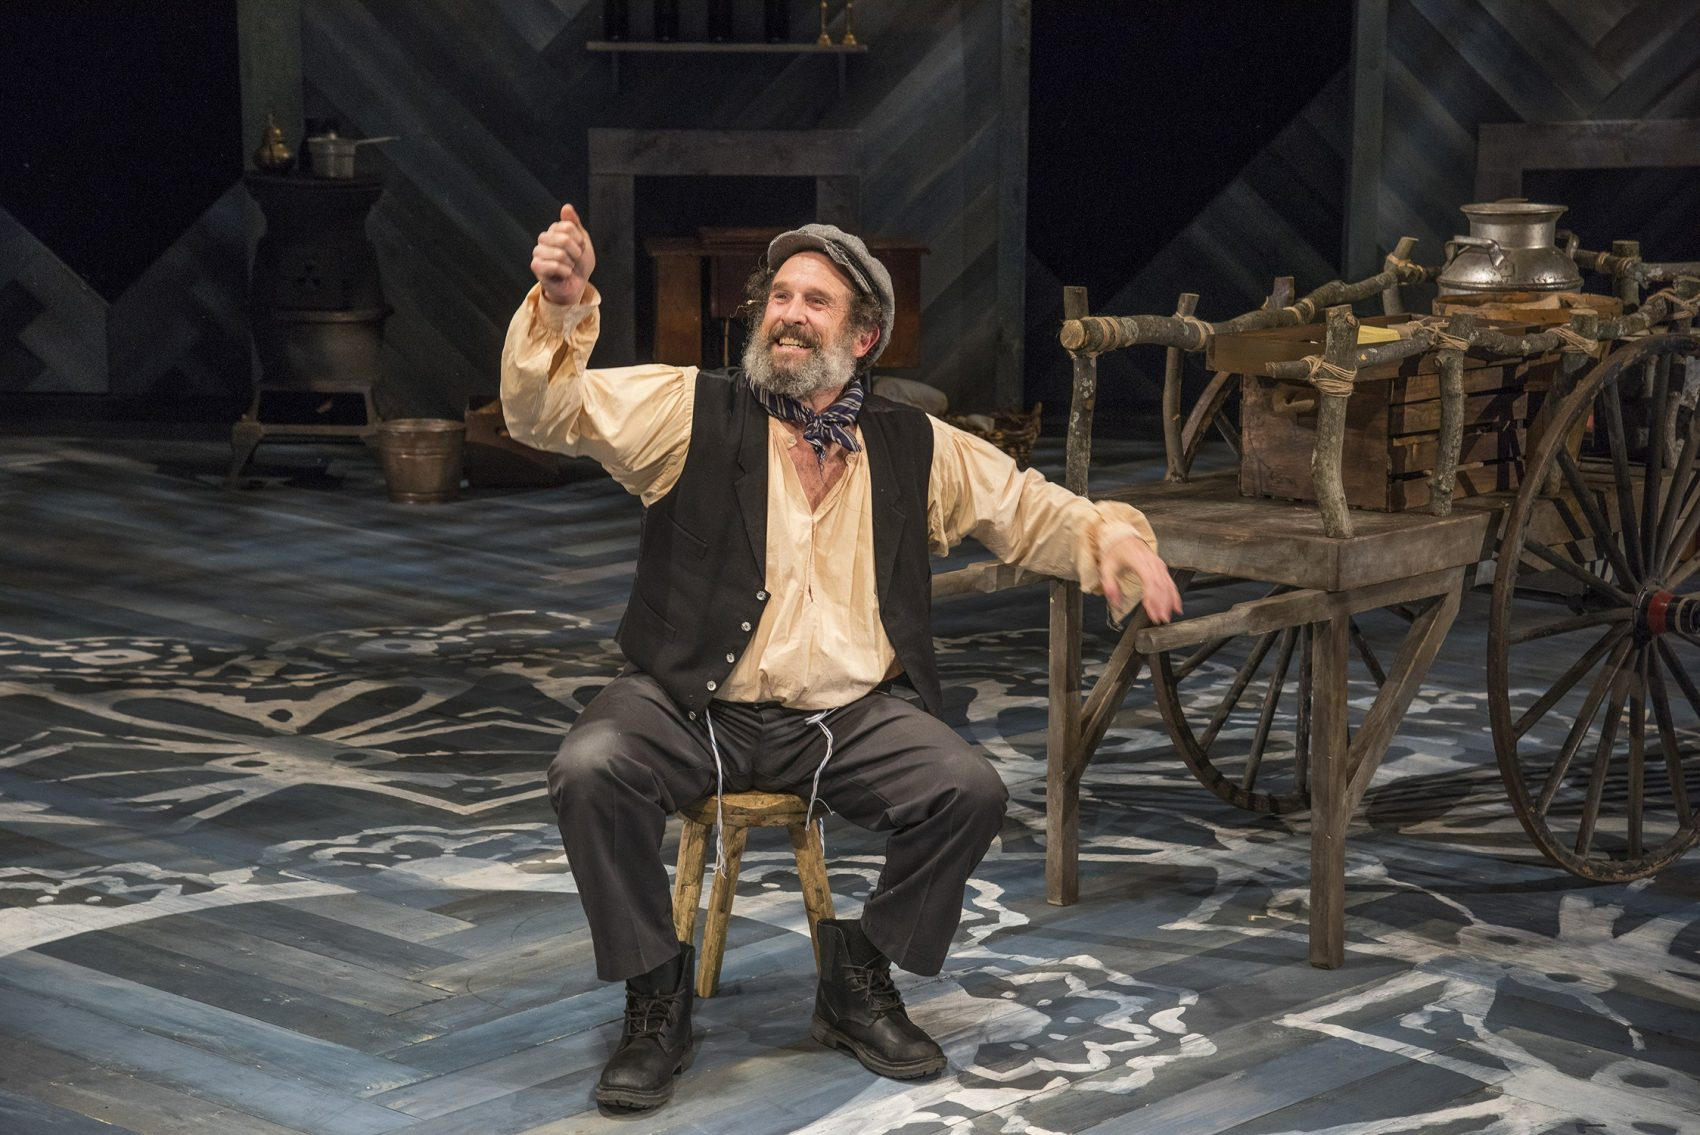 New Rep S Fiddler On The Roof Reminds Of The Past And